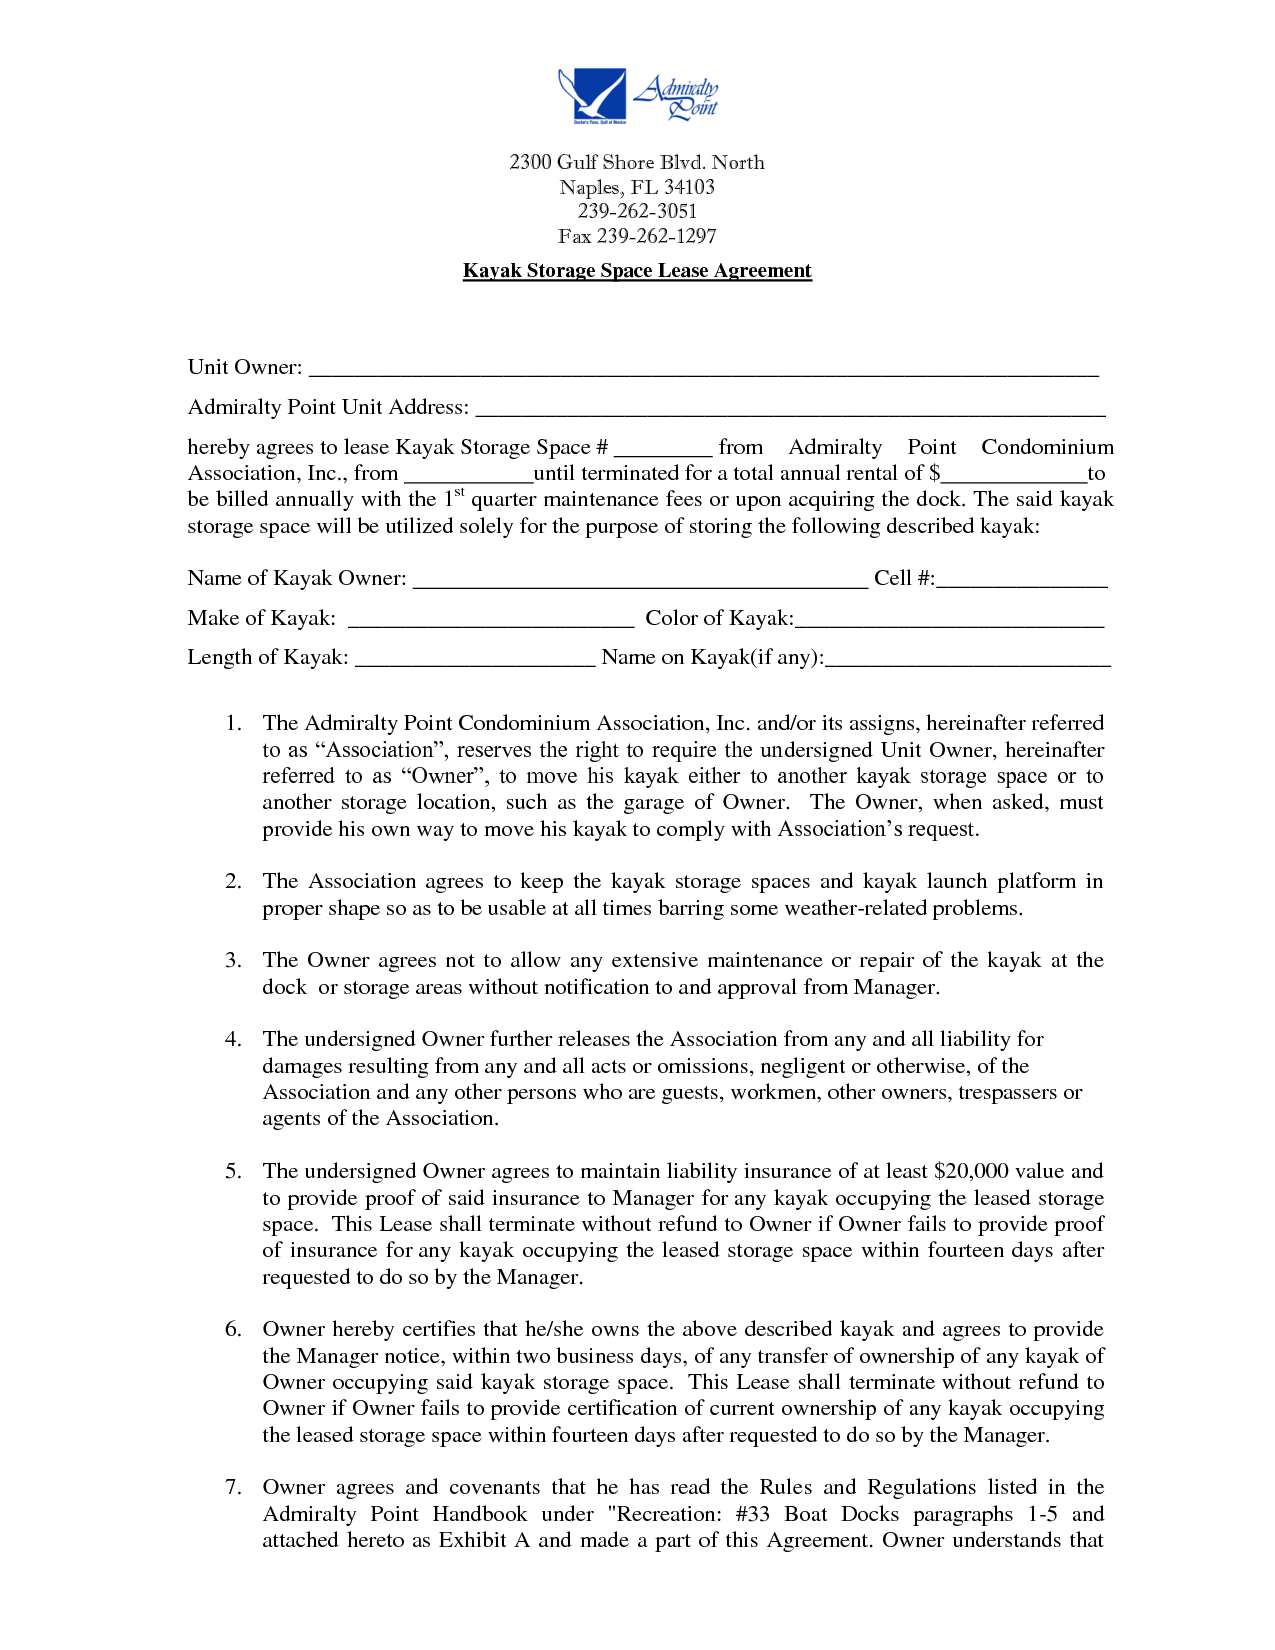 Storage Space Lease Agreement by kte19424 - storage lease ...